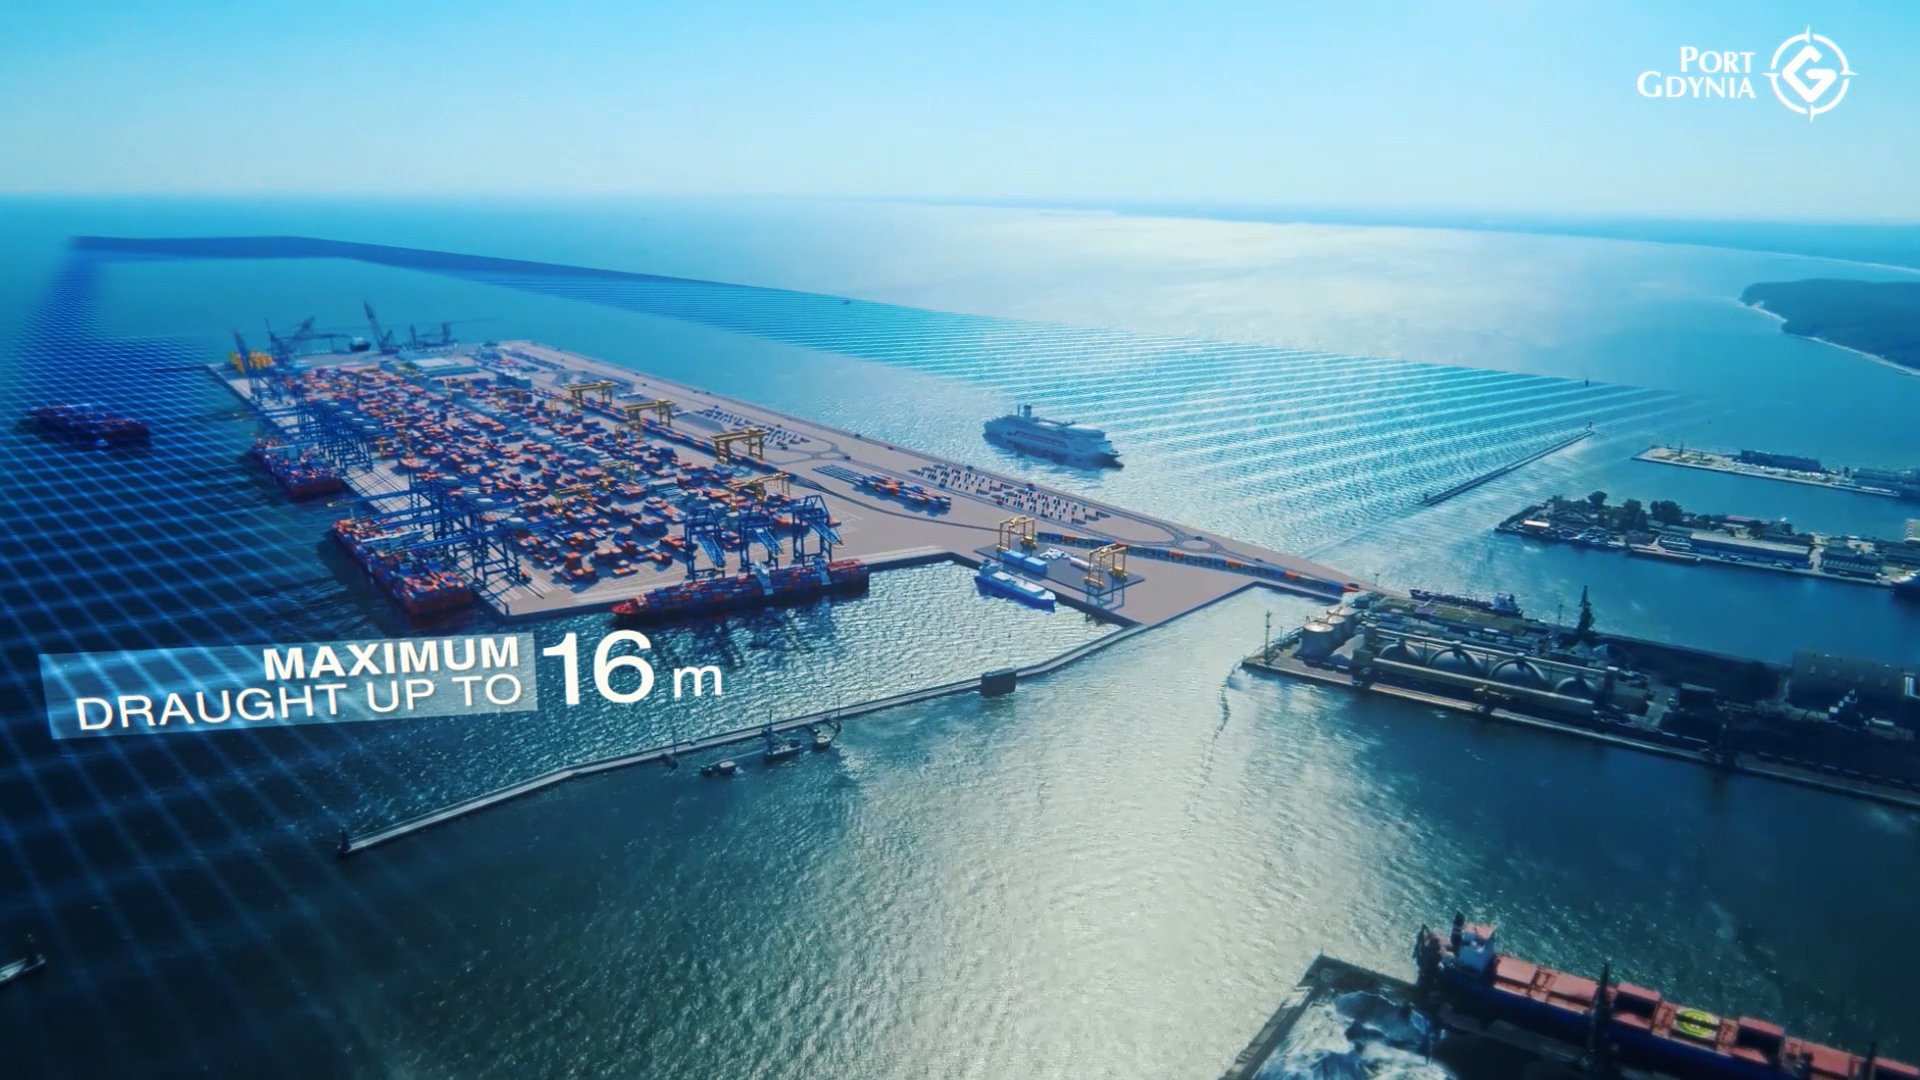 PLN 167 million of EU support for investments in seaports